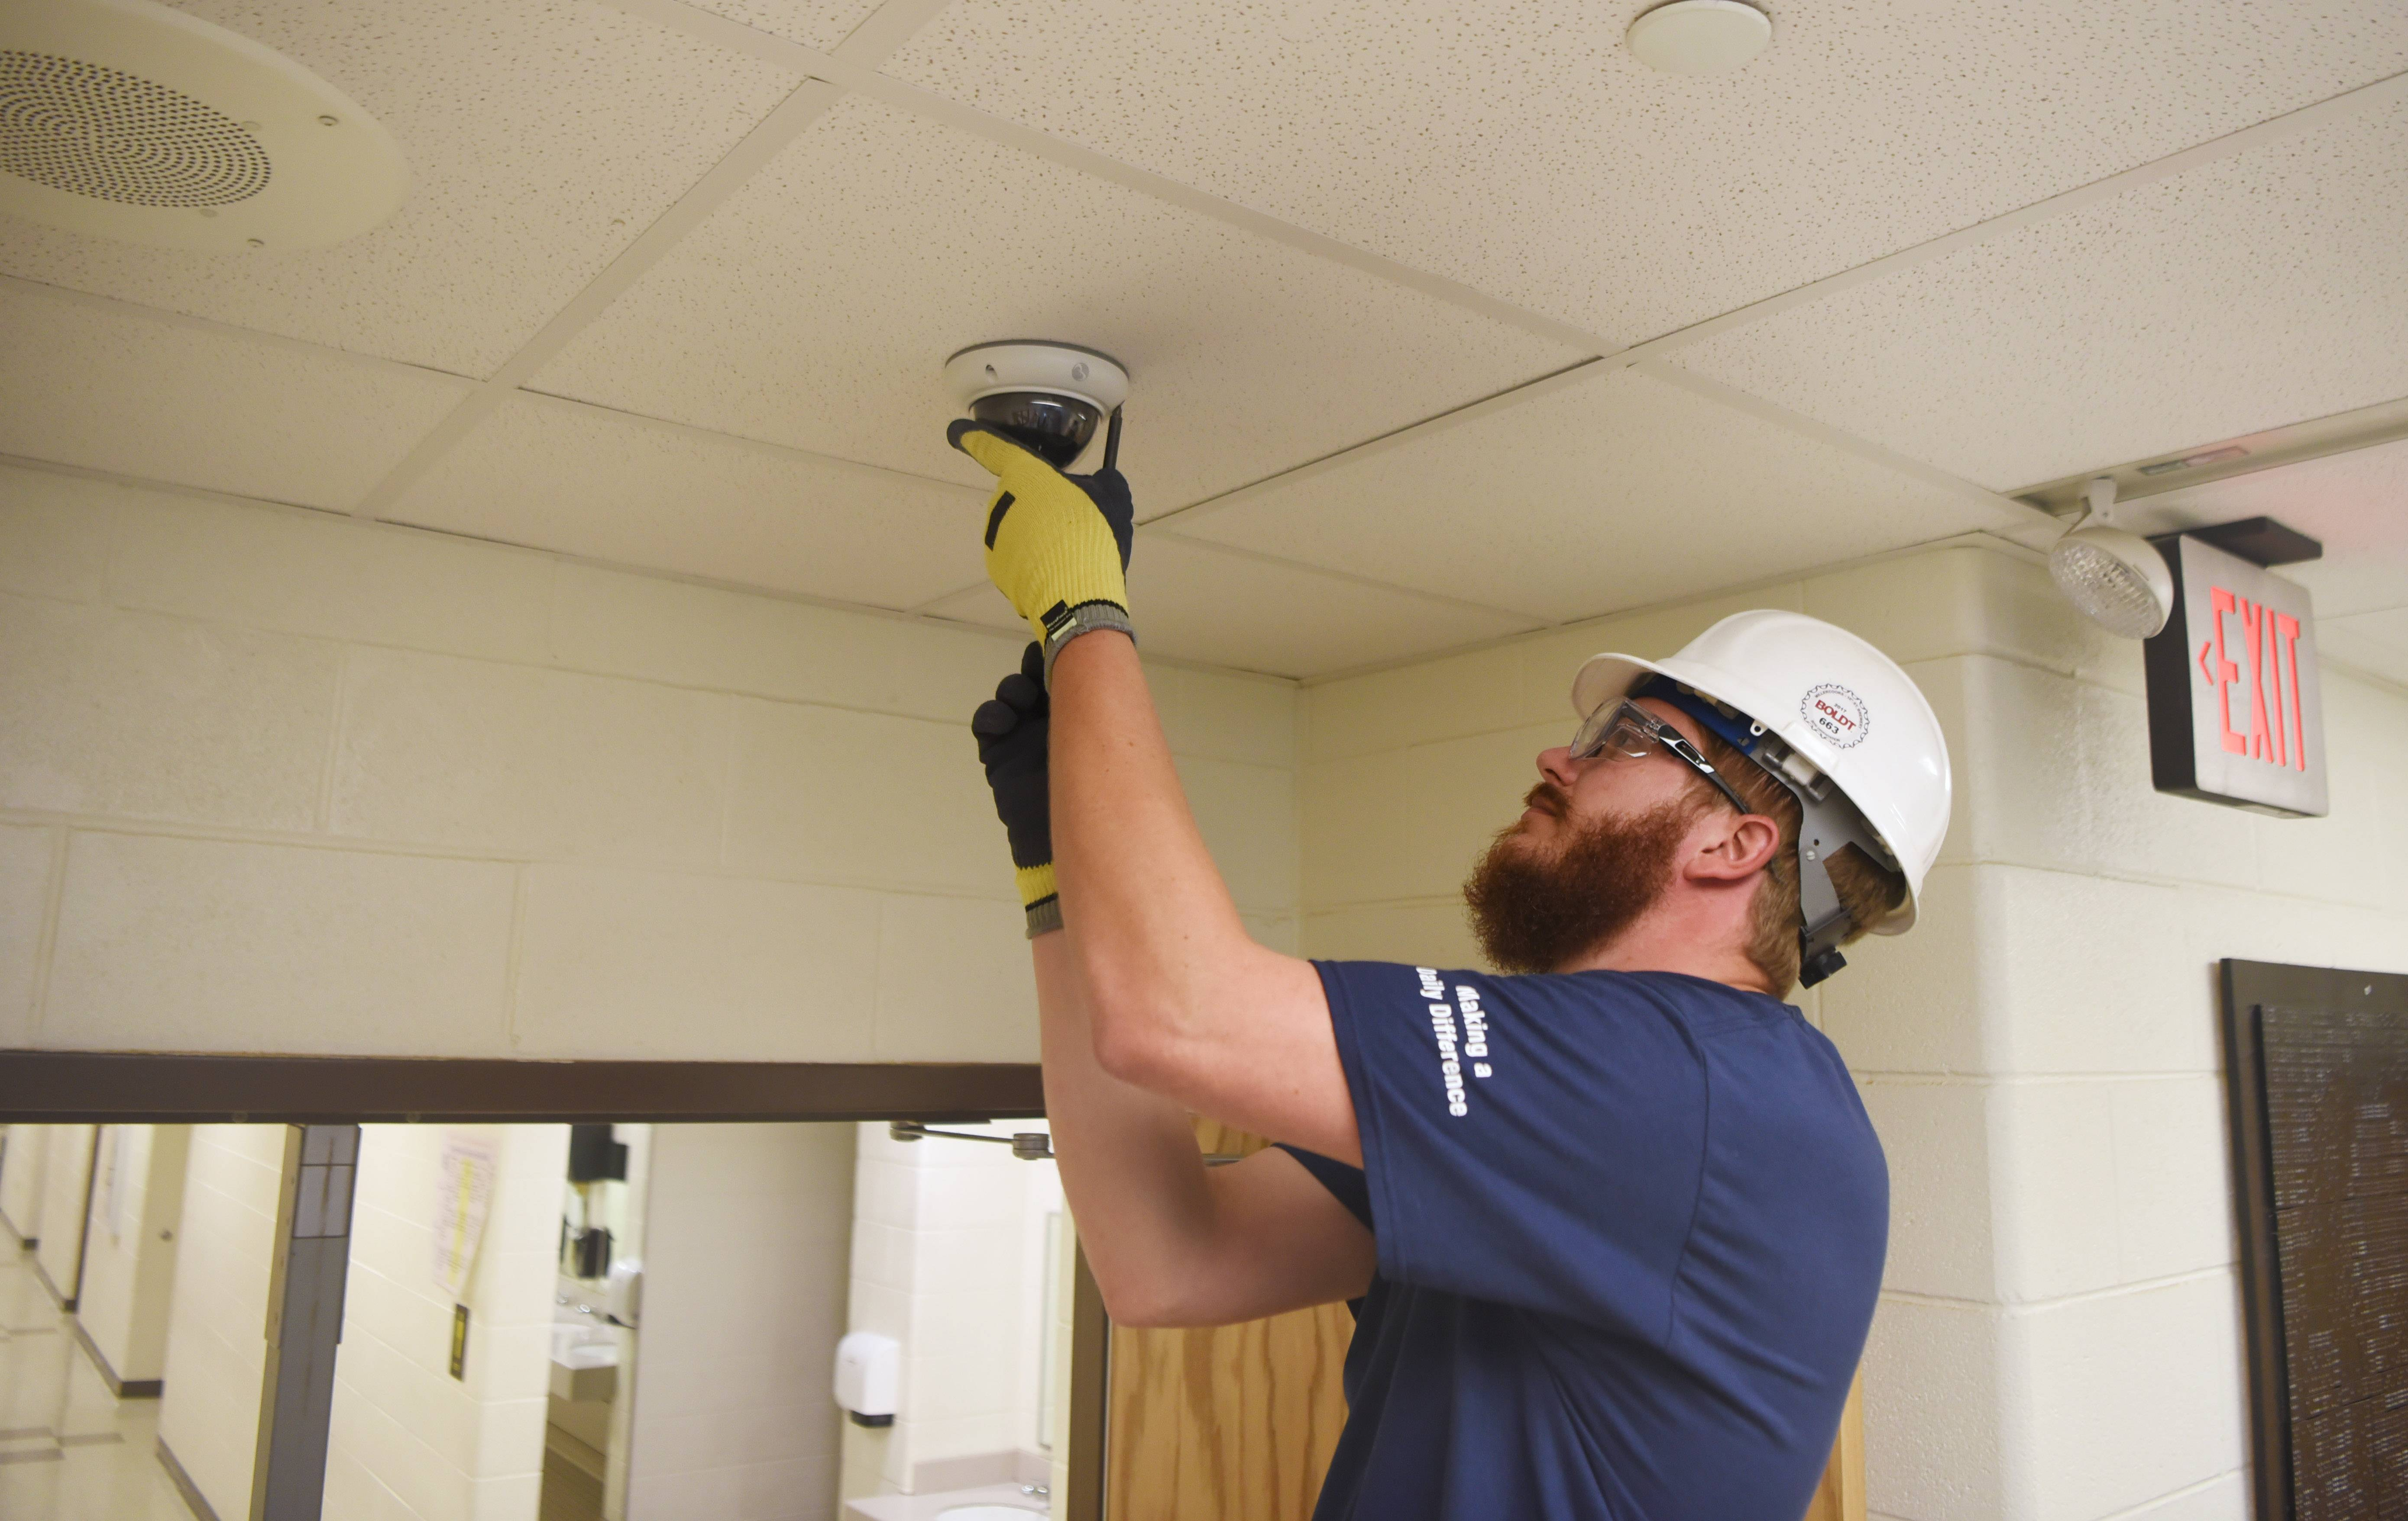 Convergint Technologies employee Cody Hoffman adjusts a security camera inside Waukegan